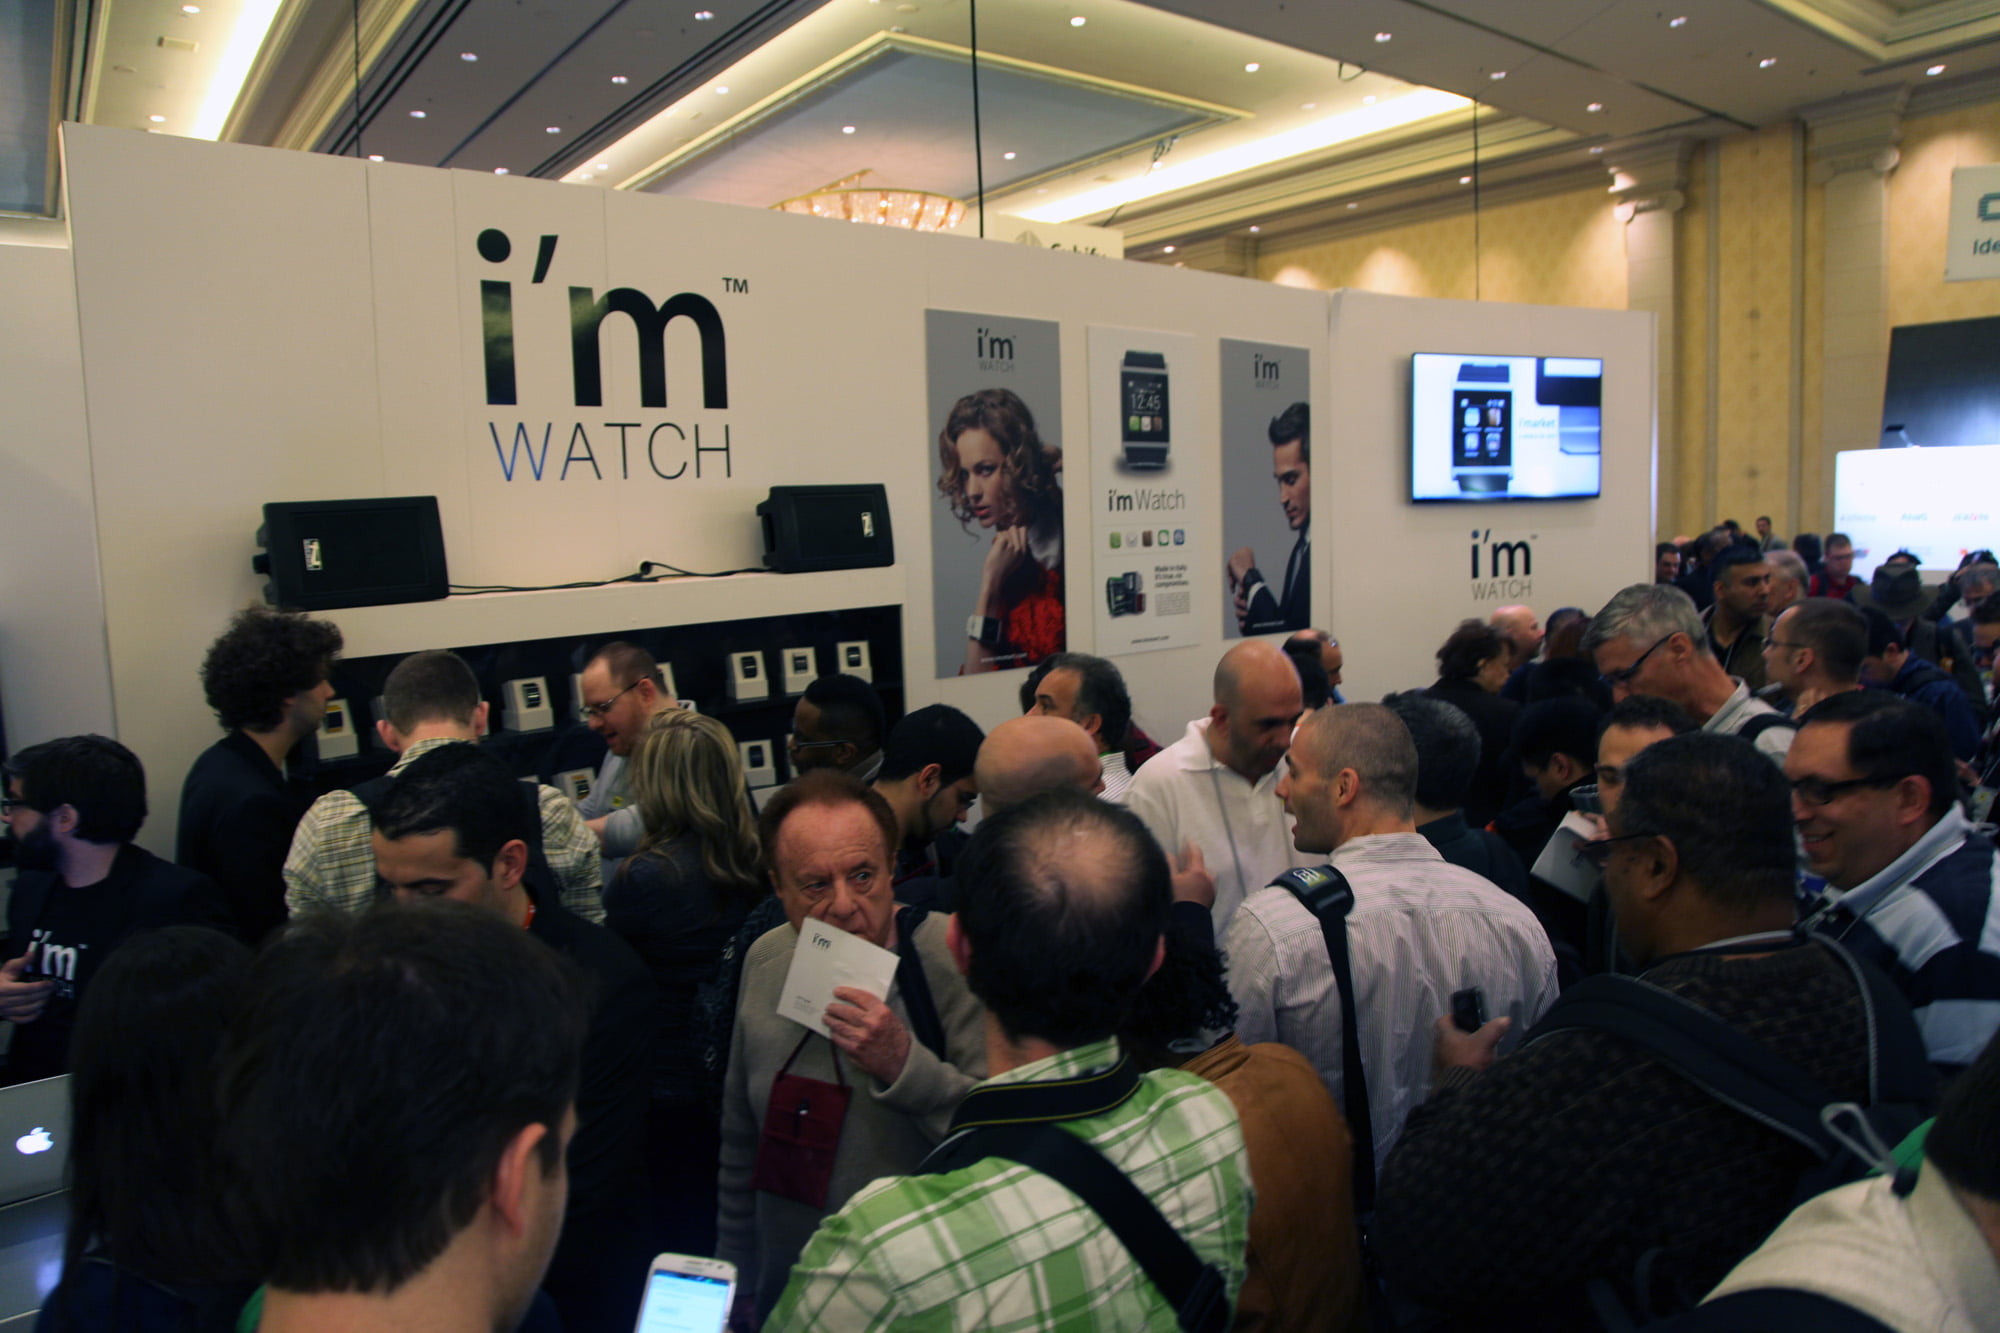 I'm Watch booth